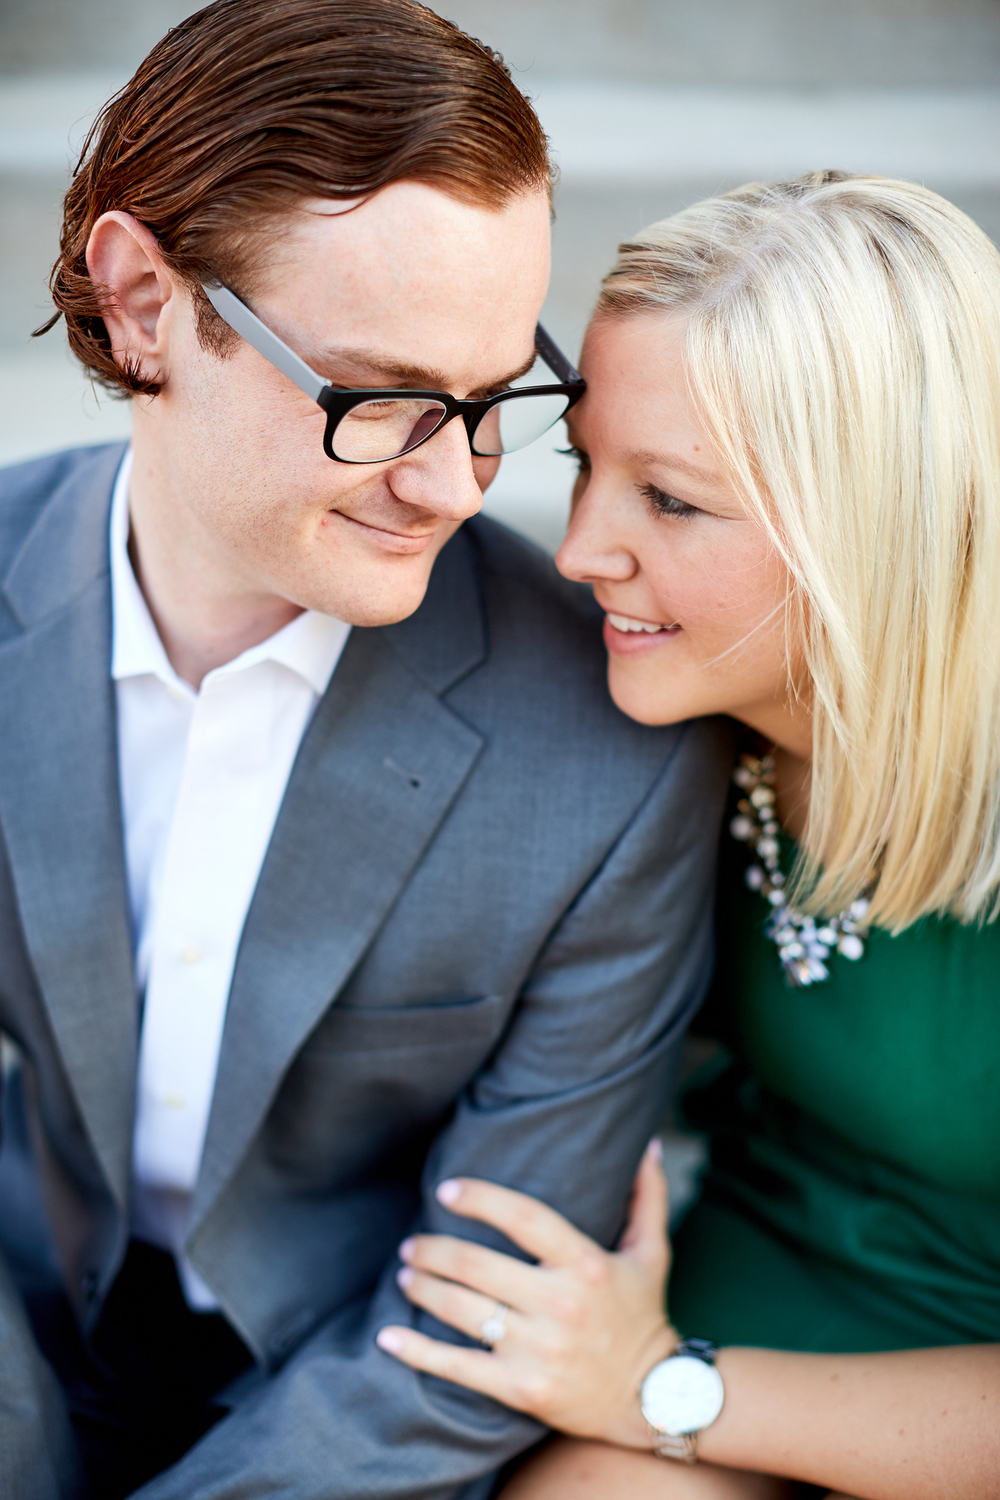 Lafayette Park Engagement Session by Oldani Photography St. Louis Wedding Photographers 66.jpg